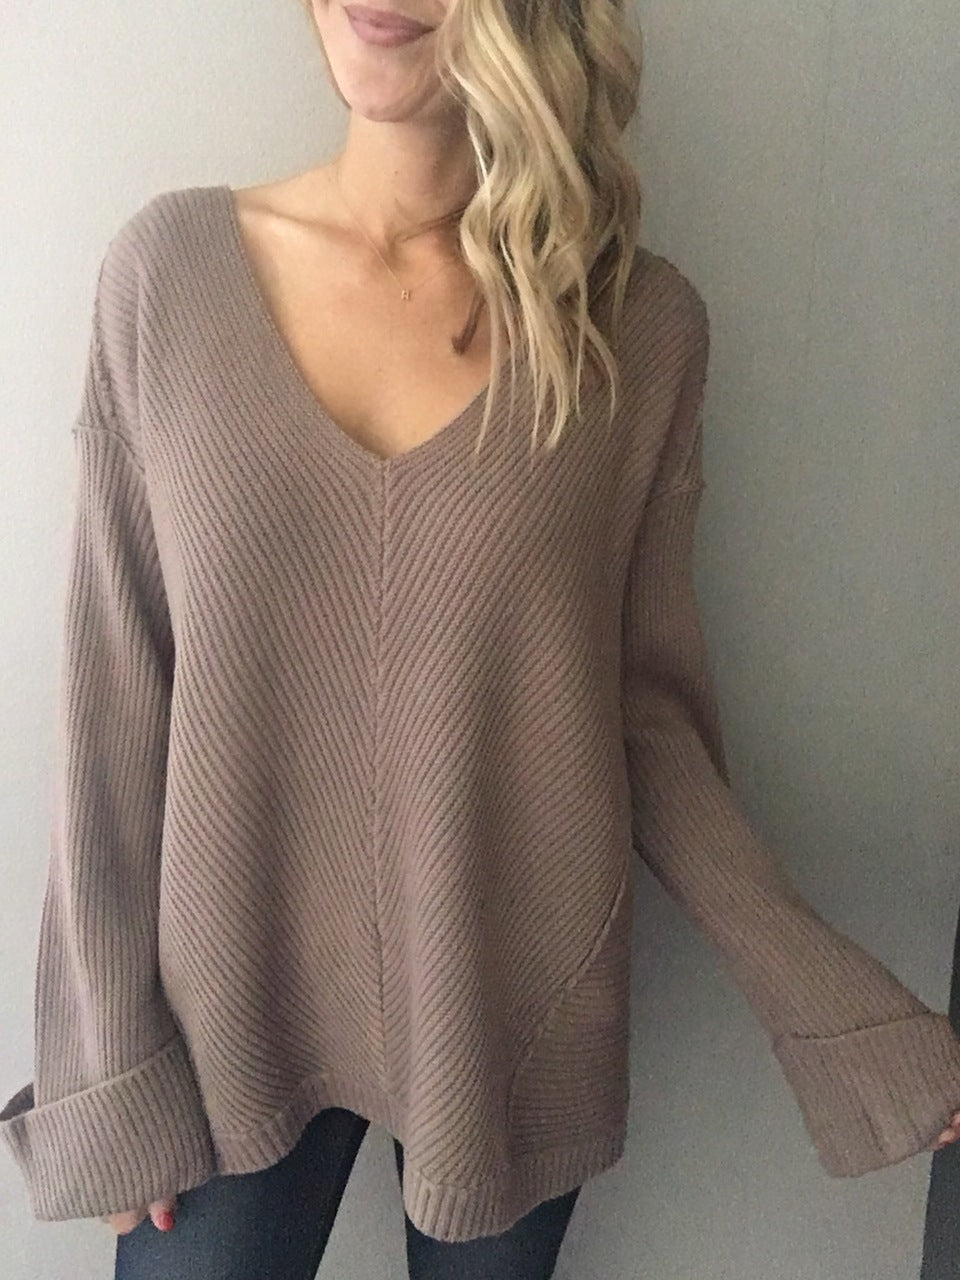 Cupid's Crush Sweater